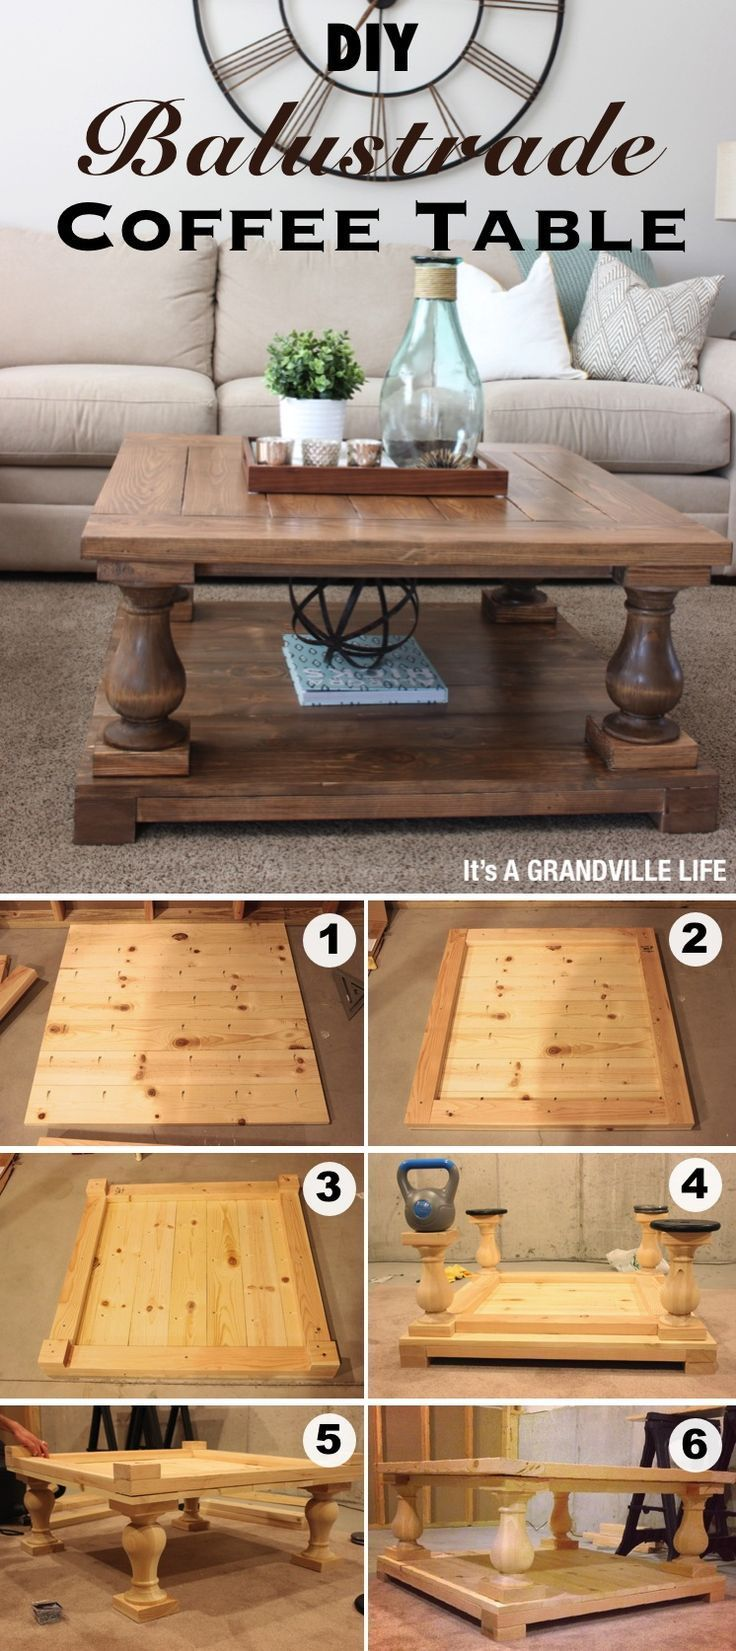 Diy Balustrade Coffee Table Get Four Ornate Wood Pillars And